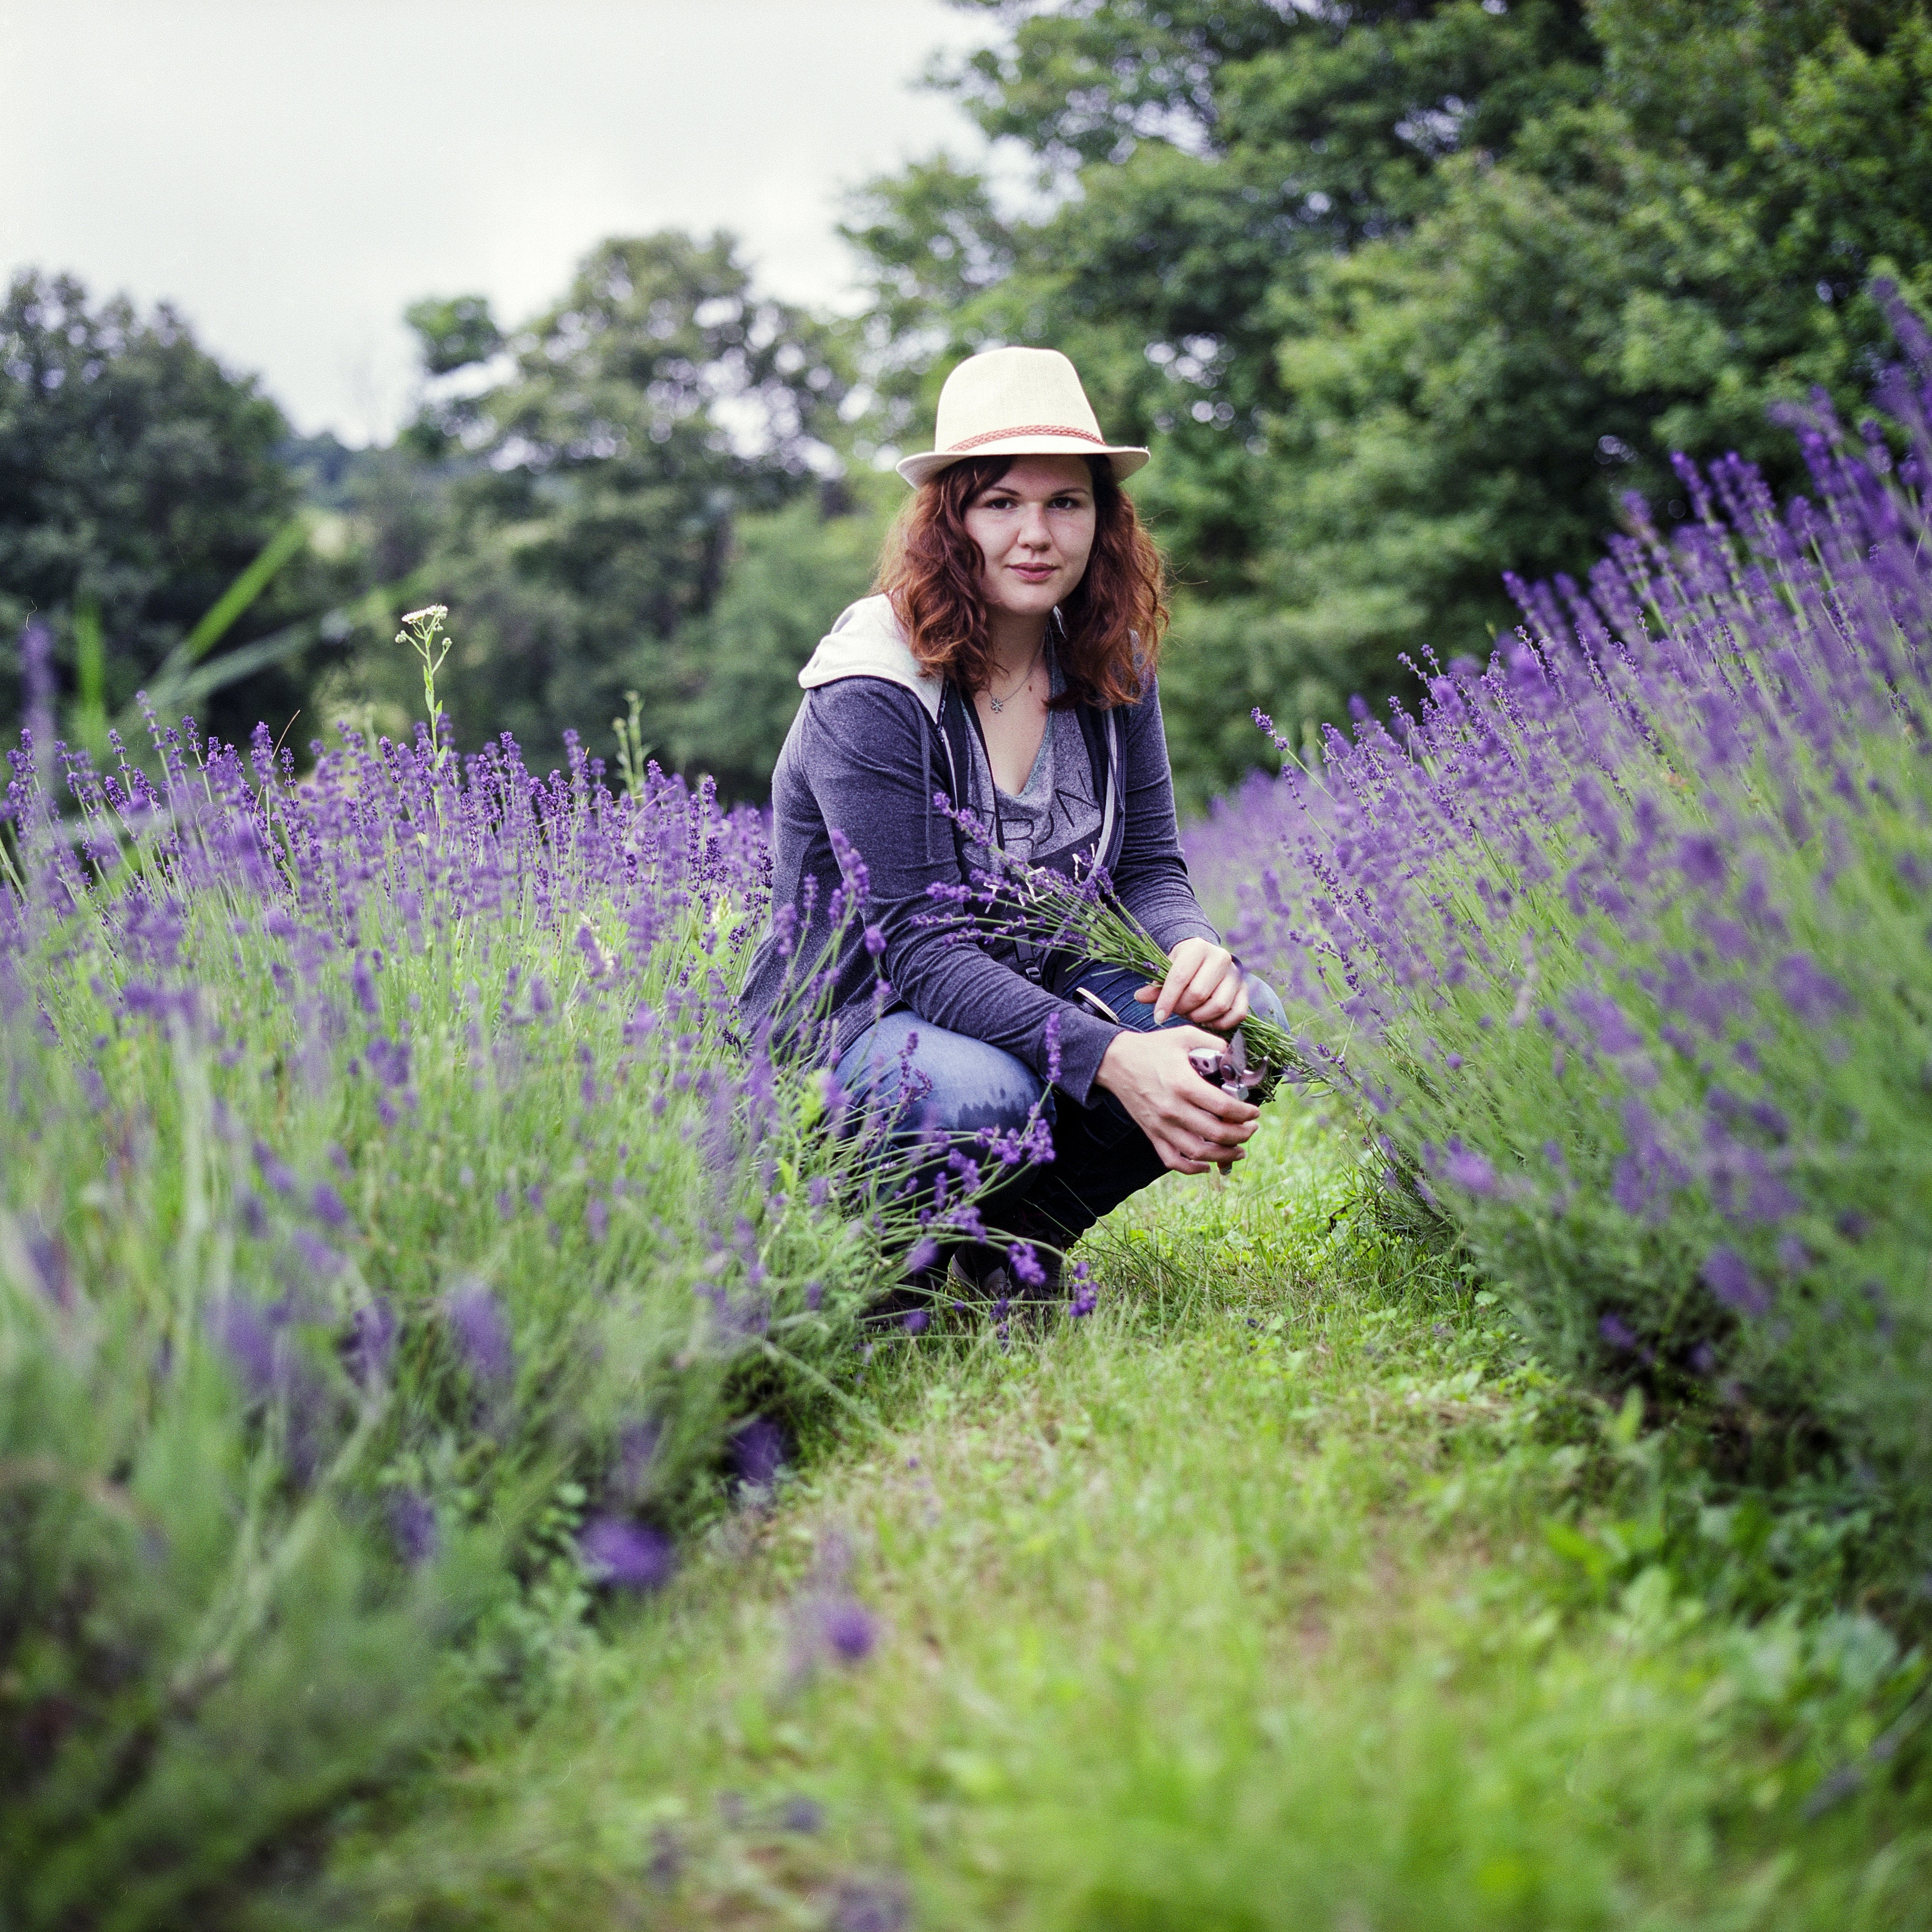 Woman Wearing Purple Jacket in Brown Hat during Day Time